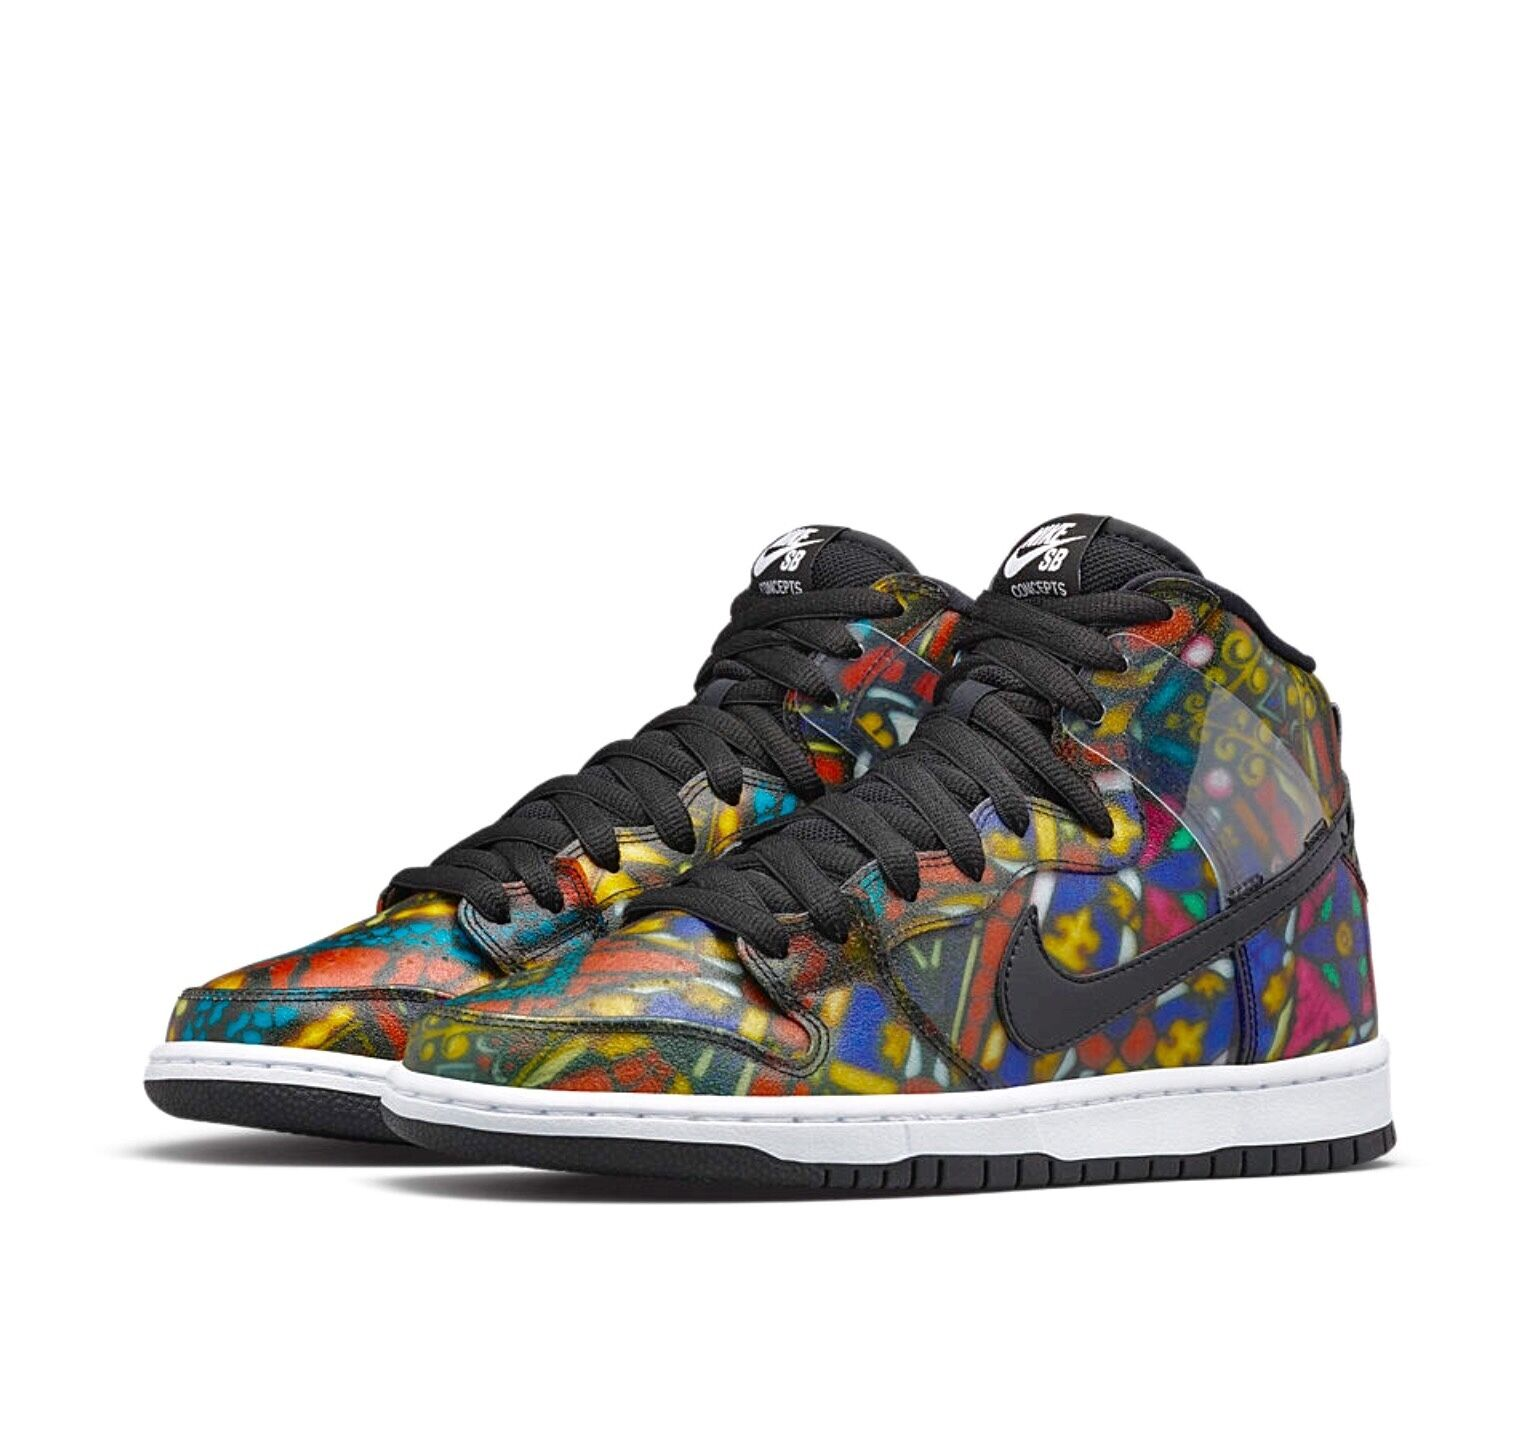 """CNCPTS x Nike SB Dunk High PRM """"Stained Glass"""" (size 12)"""